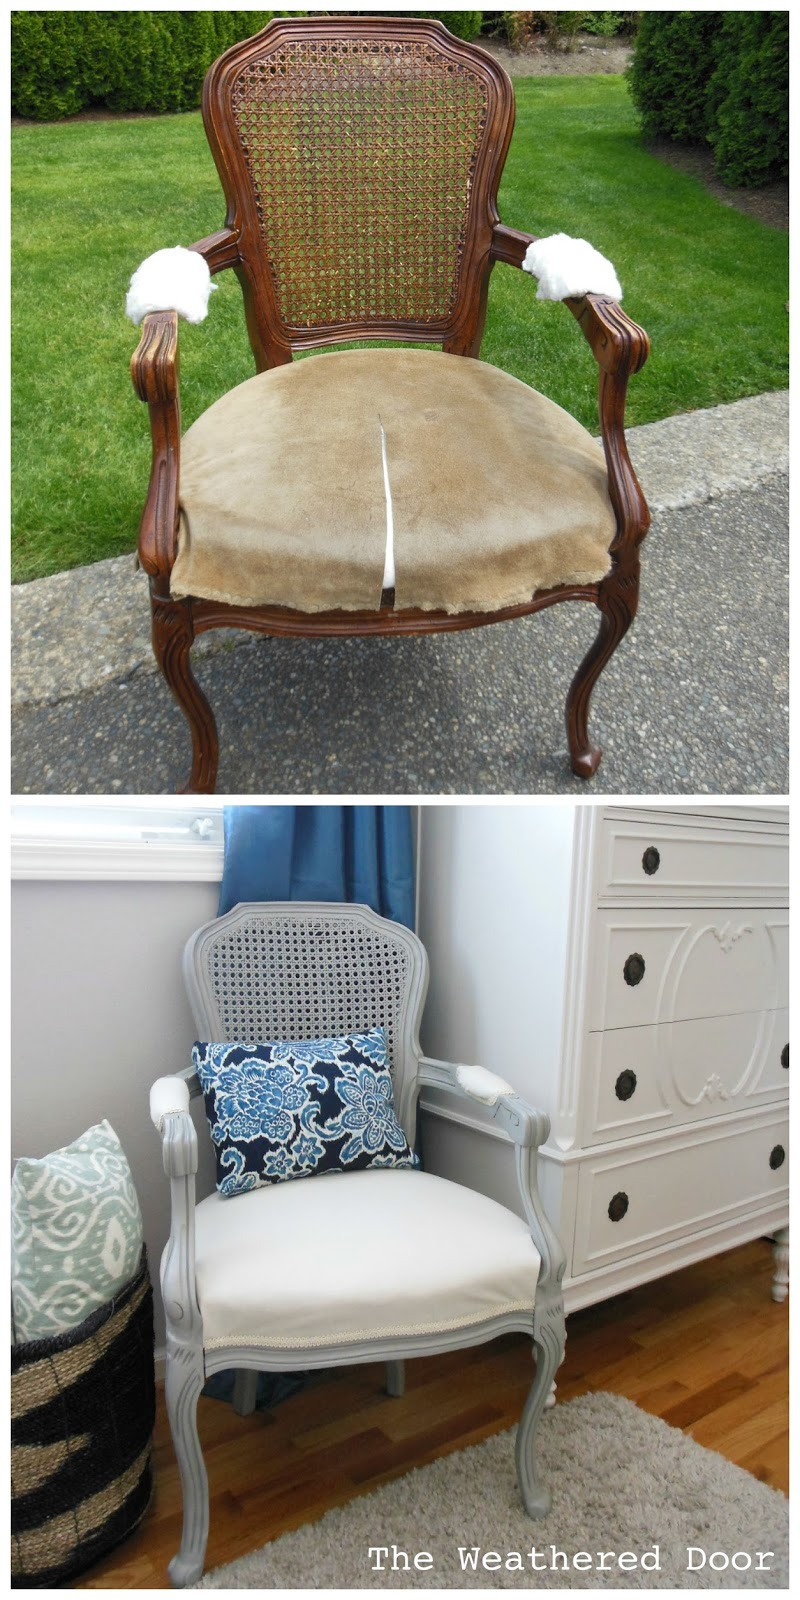 Reupholster Egg Chair How To Upholstering A French Chair The Weathered Door